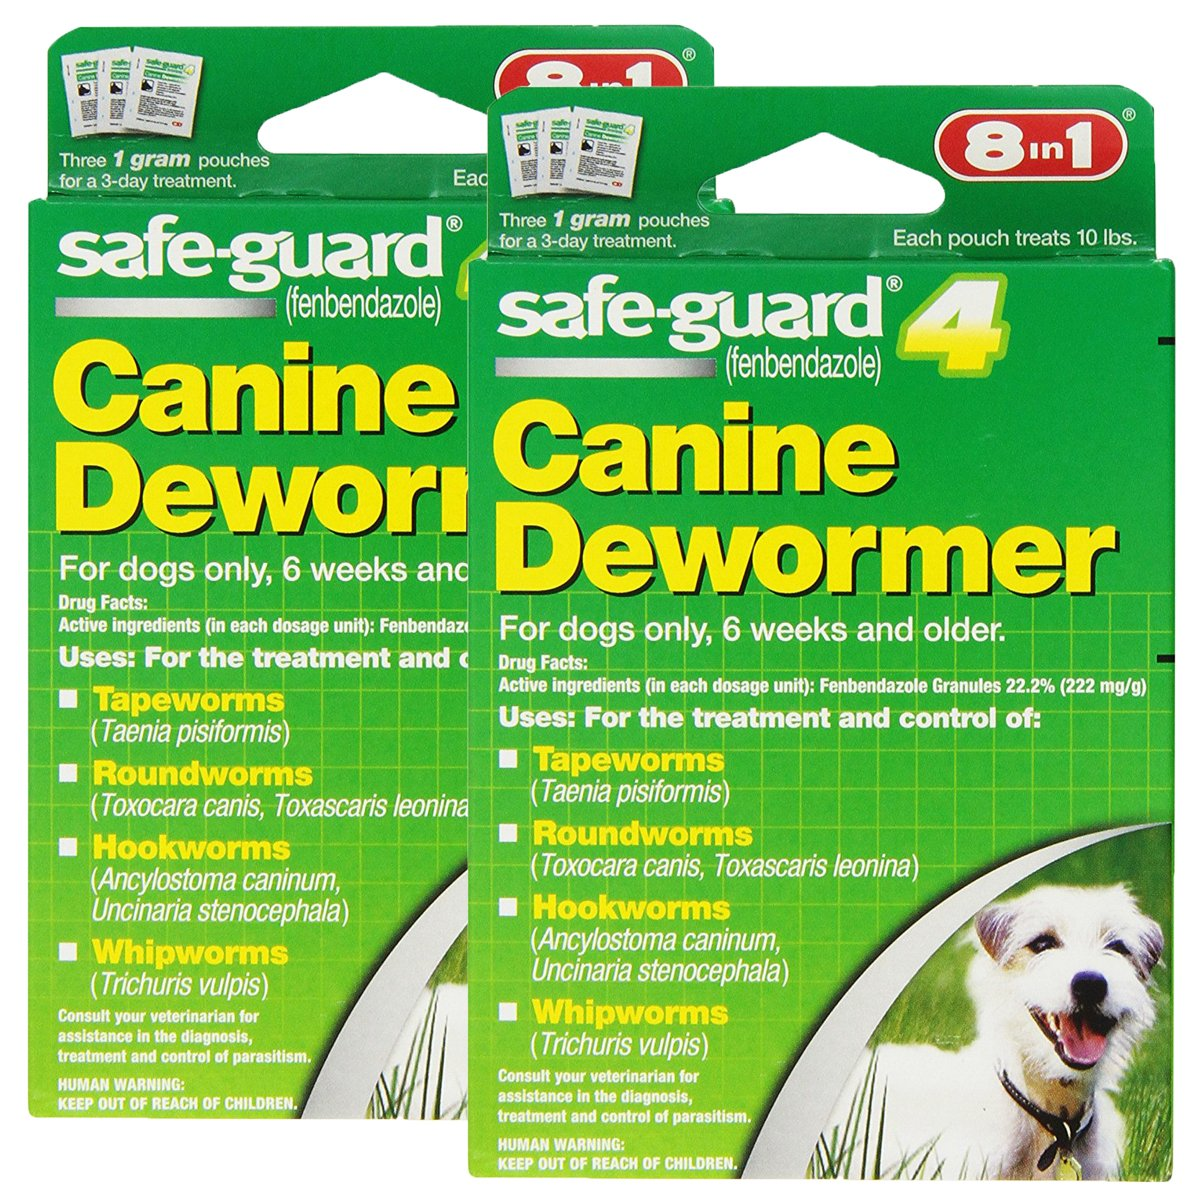 8 In 1 Safe Guard Canine DeWormer for S Dogs, 1-Gram by Excel